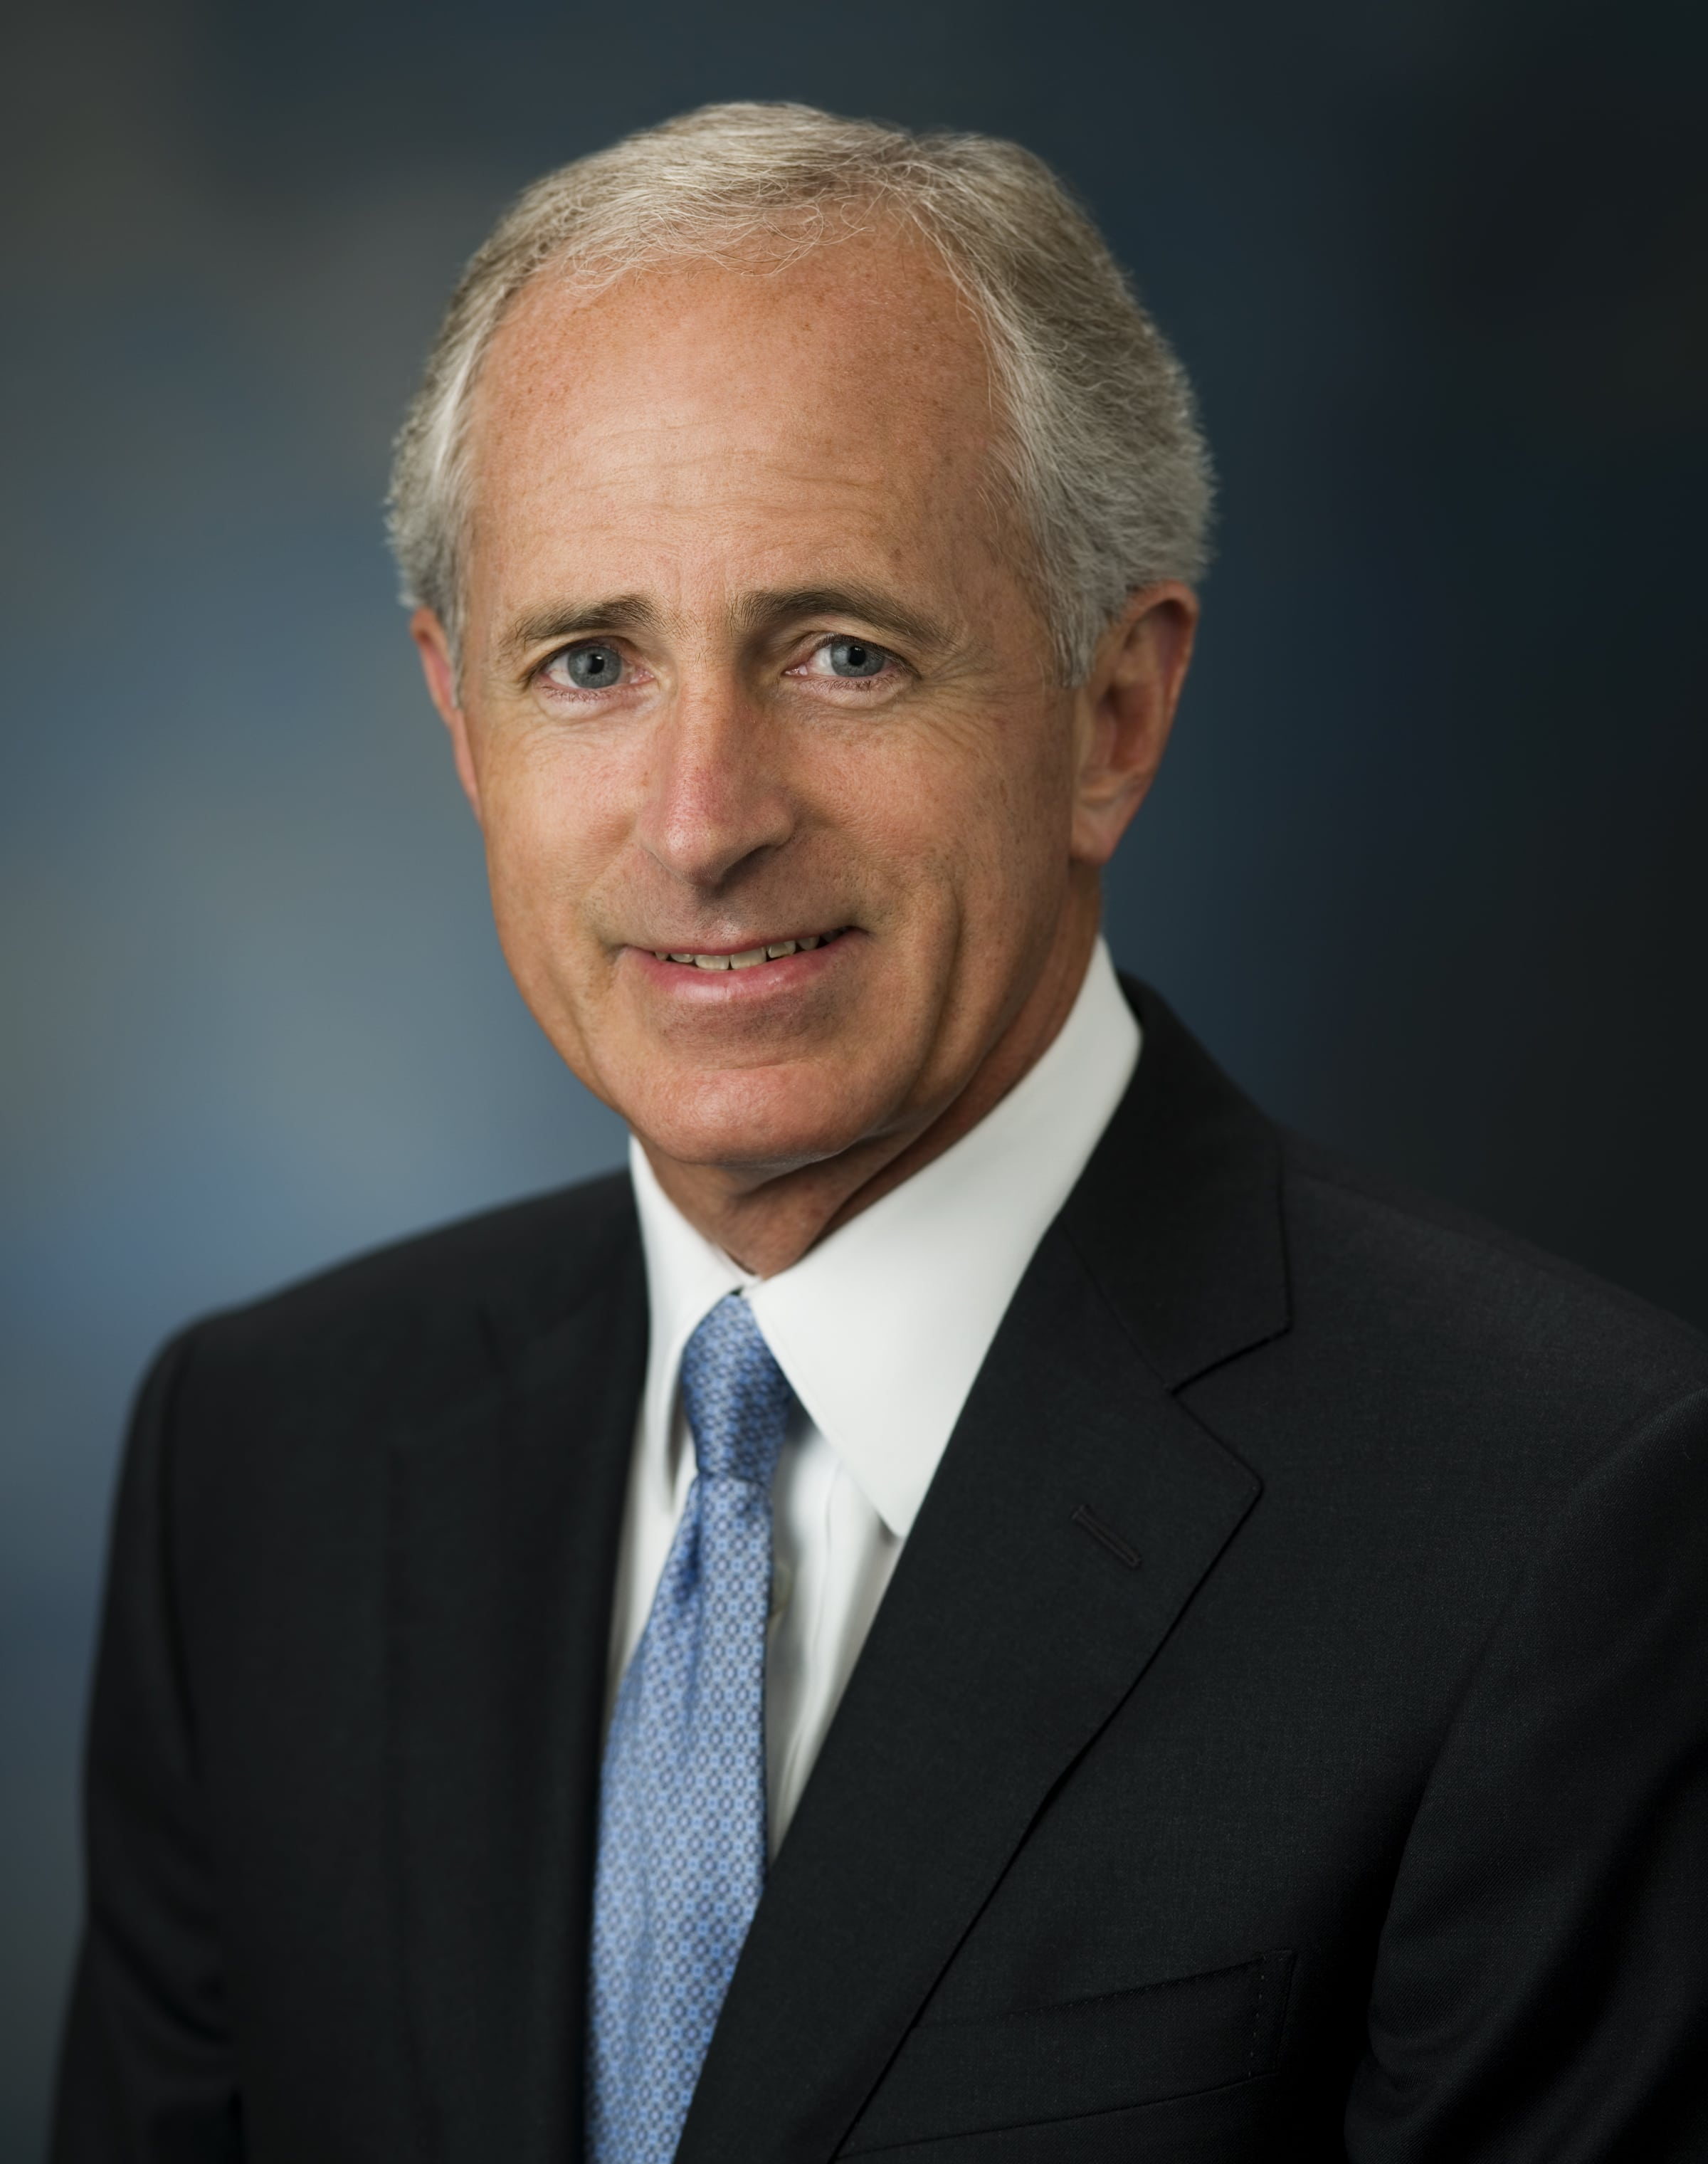 Corker Warns Against Silencing Politicians